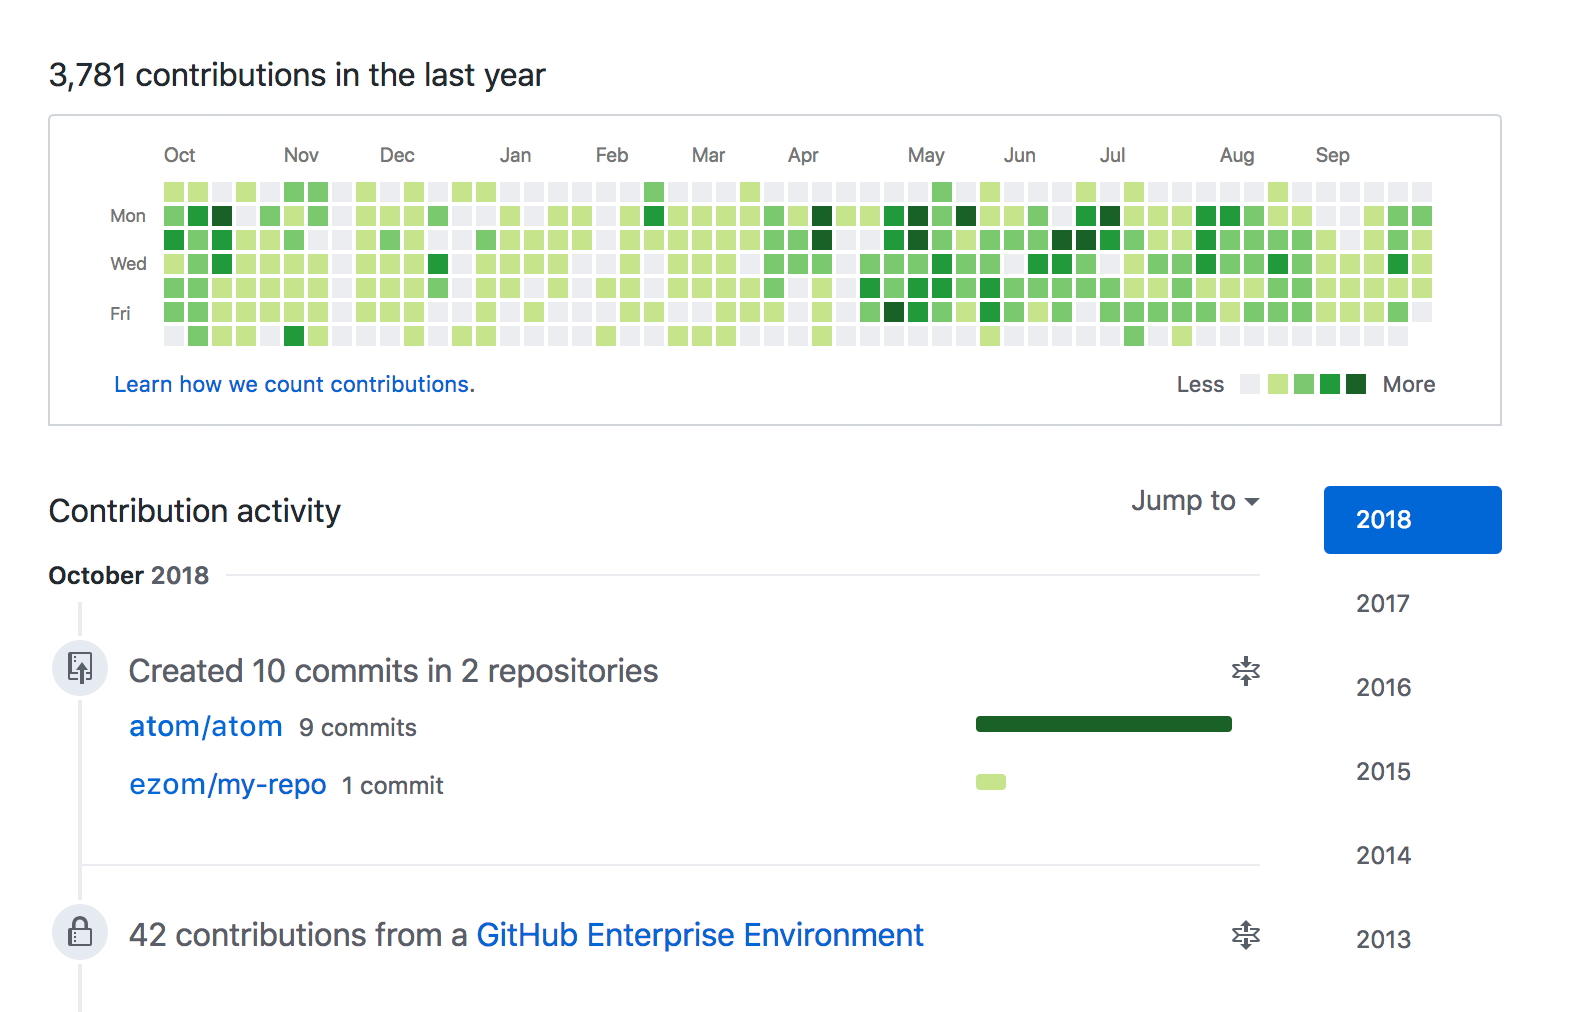 Contributions from a GitHub Enterprise environment